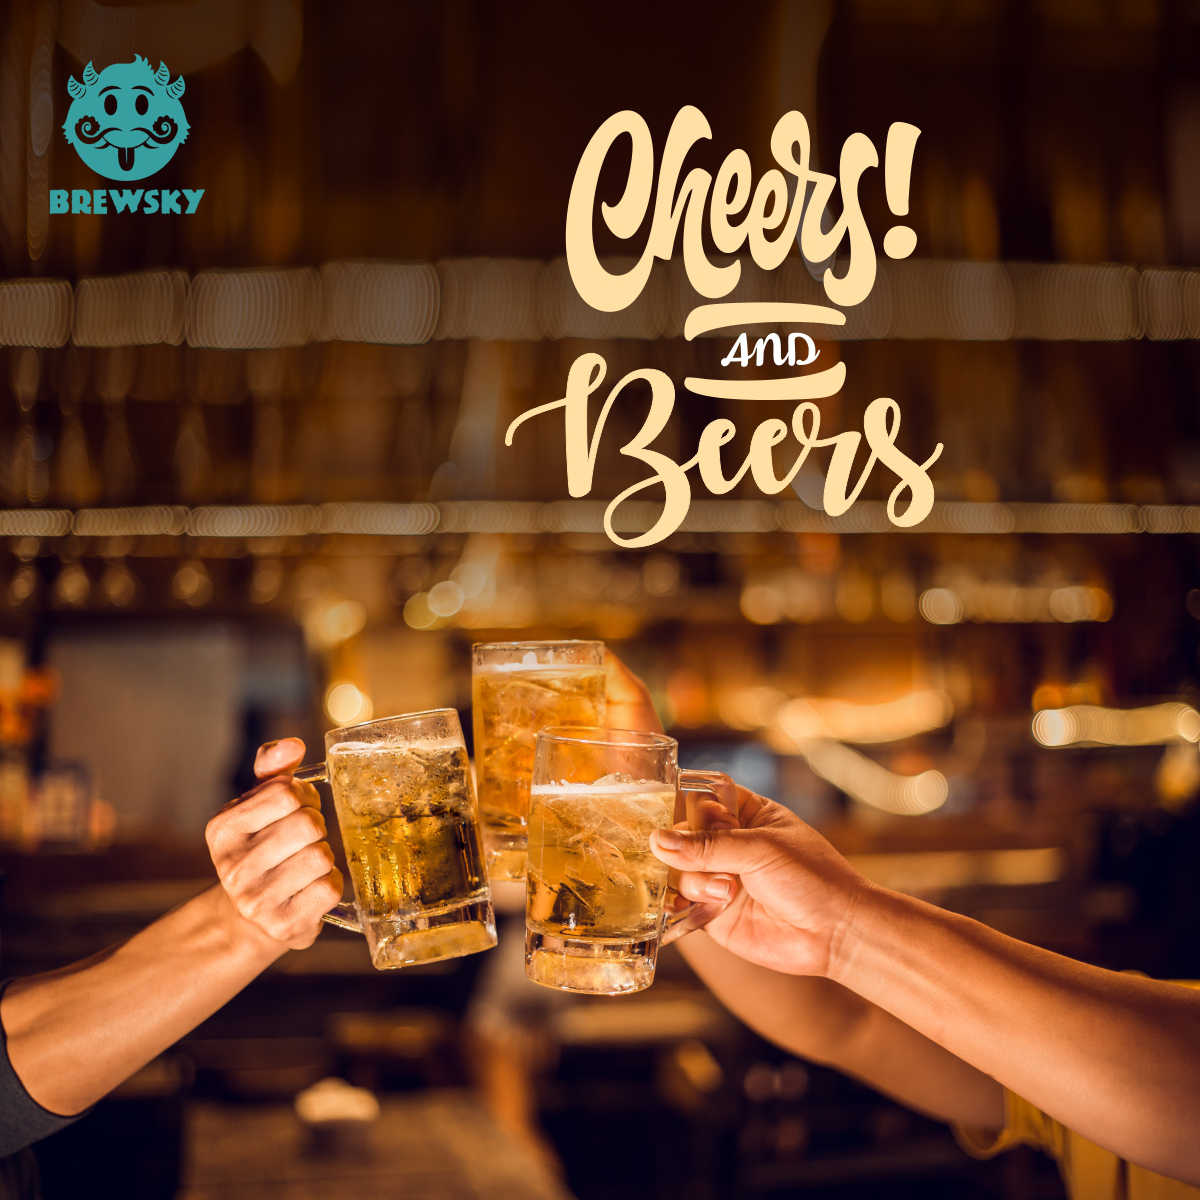 Brewsky Cheers artwork